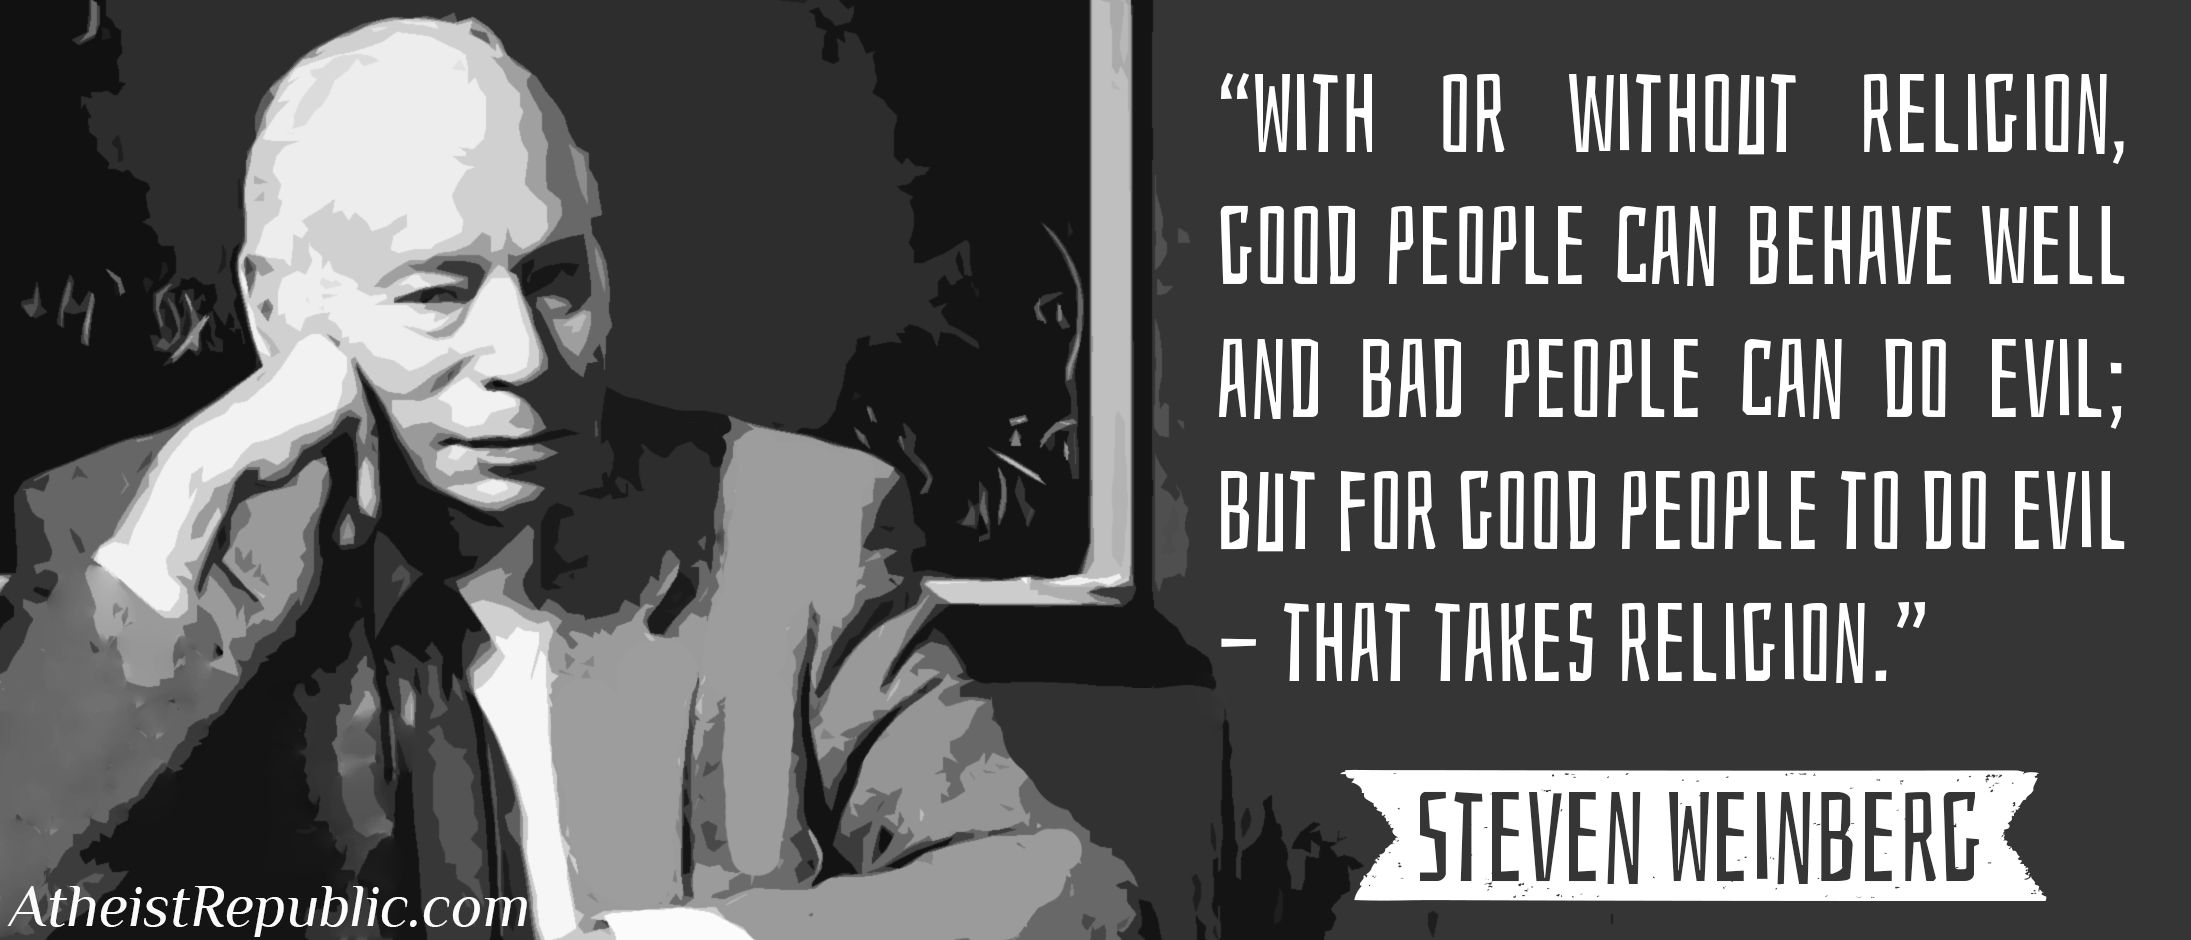 Famous Atheist Quotes For Good People To Do Evil That Takes Religion Steven Weinberg